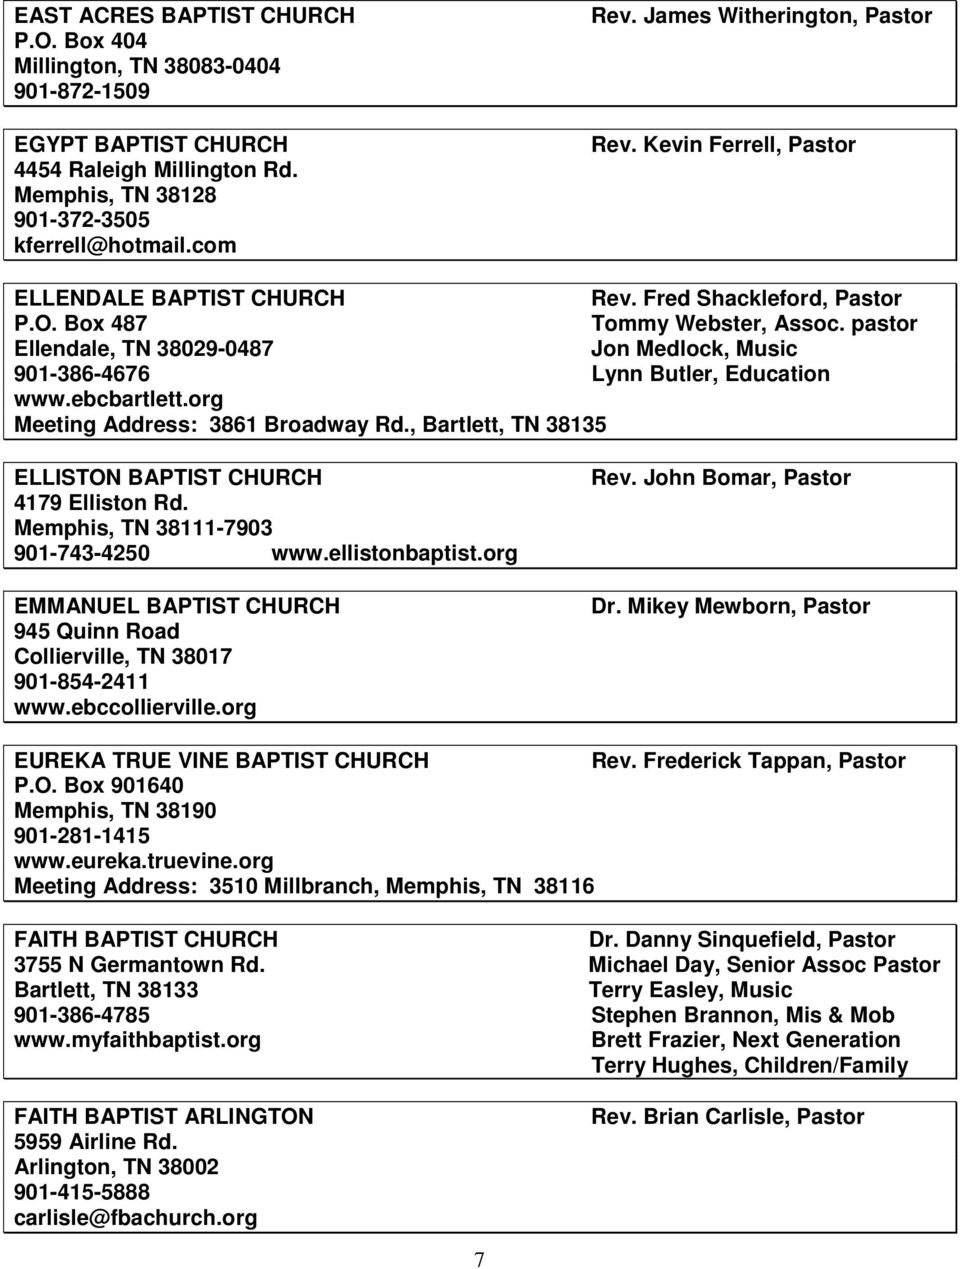 MID-SOUTH BAPTIST ASSOCIATION 2015 DIRECTORY BY CHURCHES - PDF